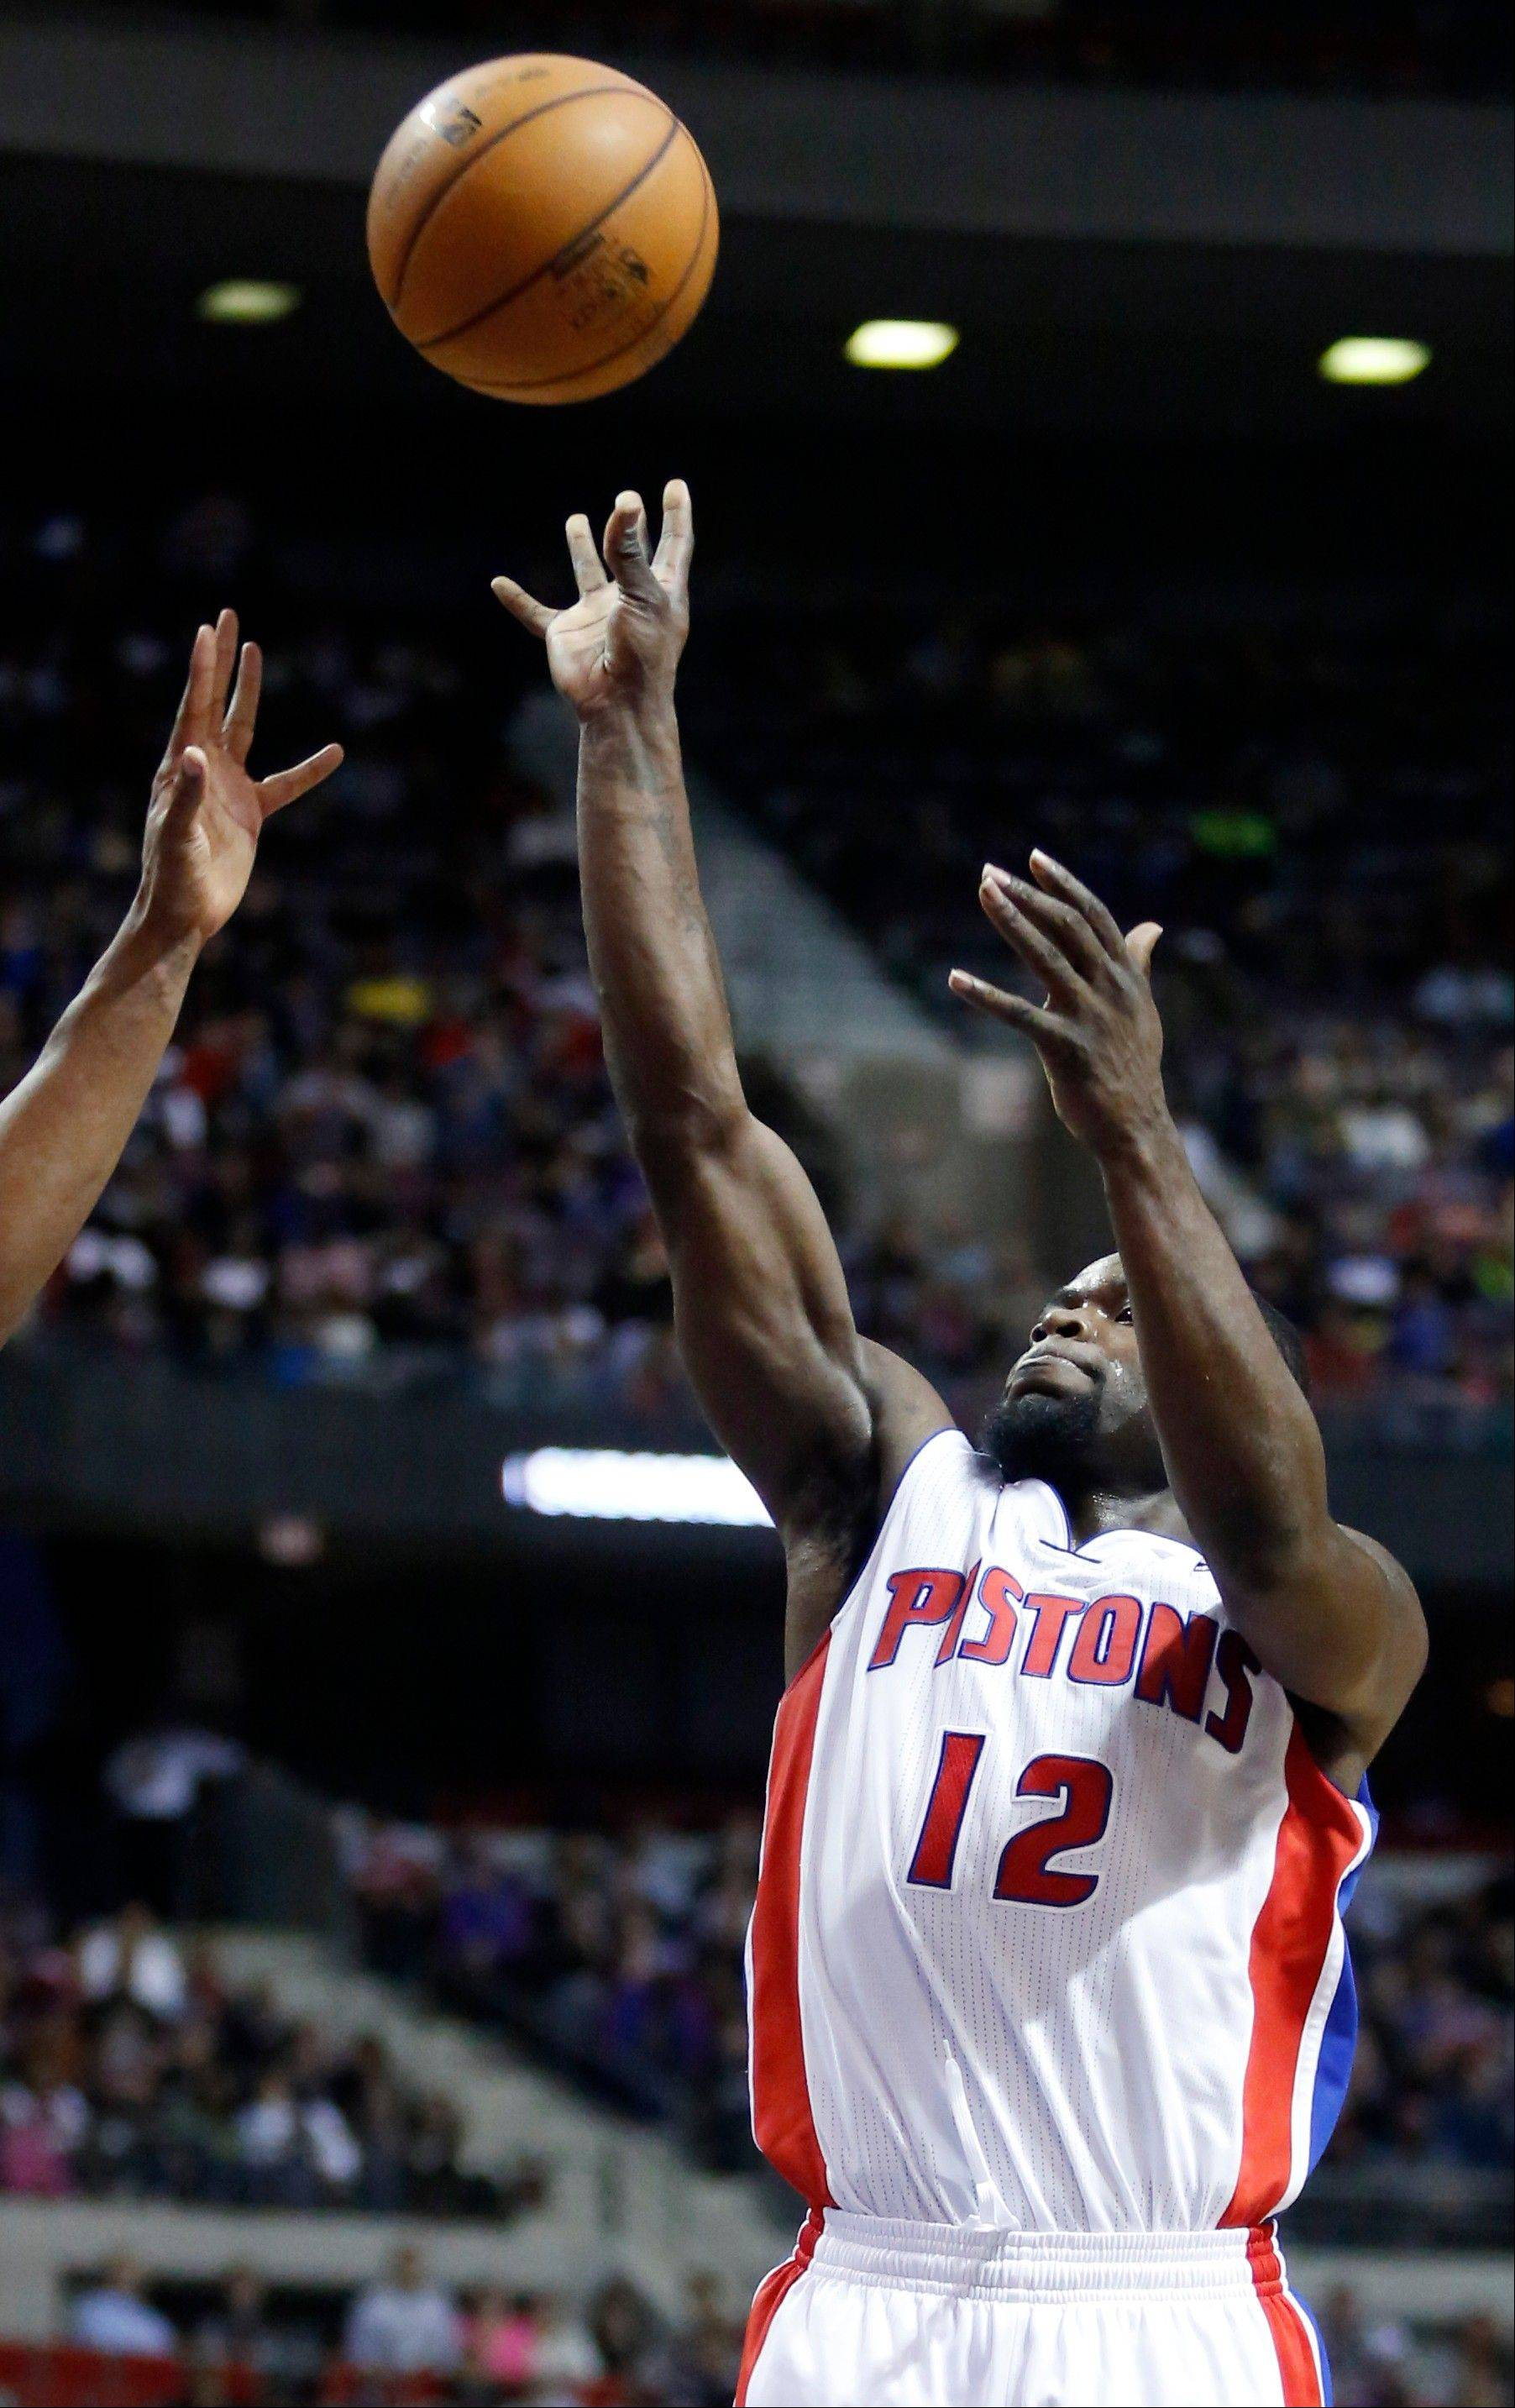 Detroit Pistons guard Will Bynum takes a shot against the Miami Heat in the second half Friday in Auburn Hills, Mich.